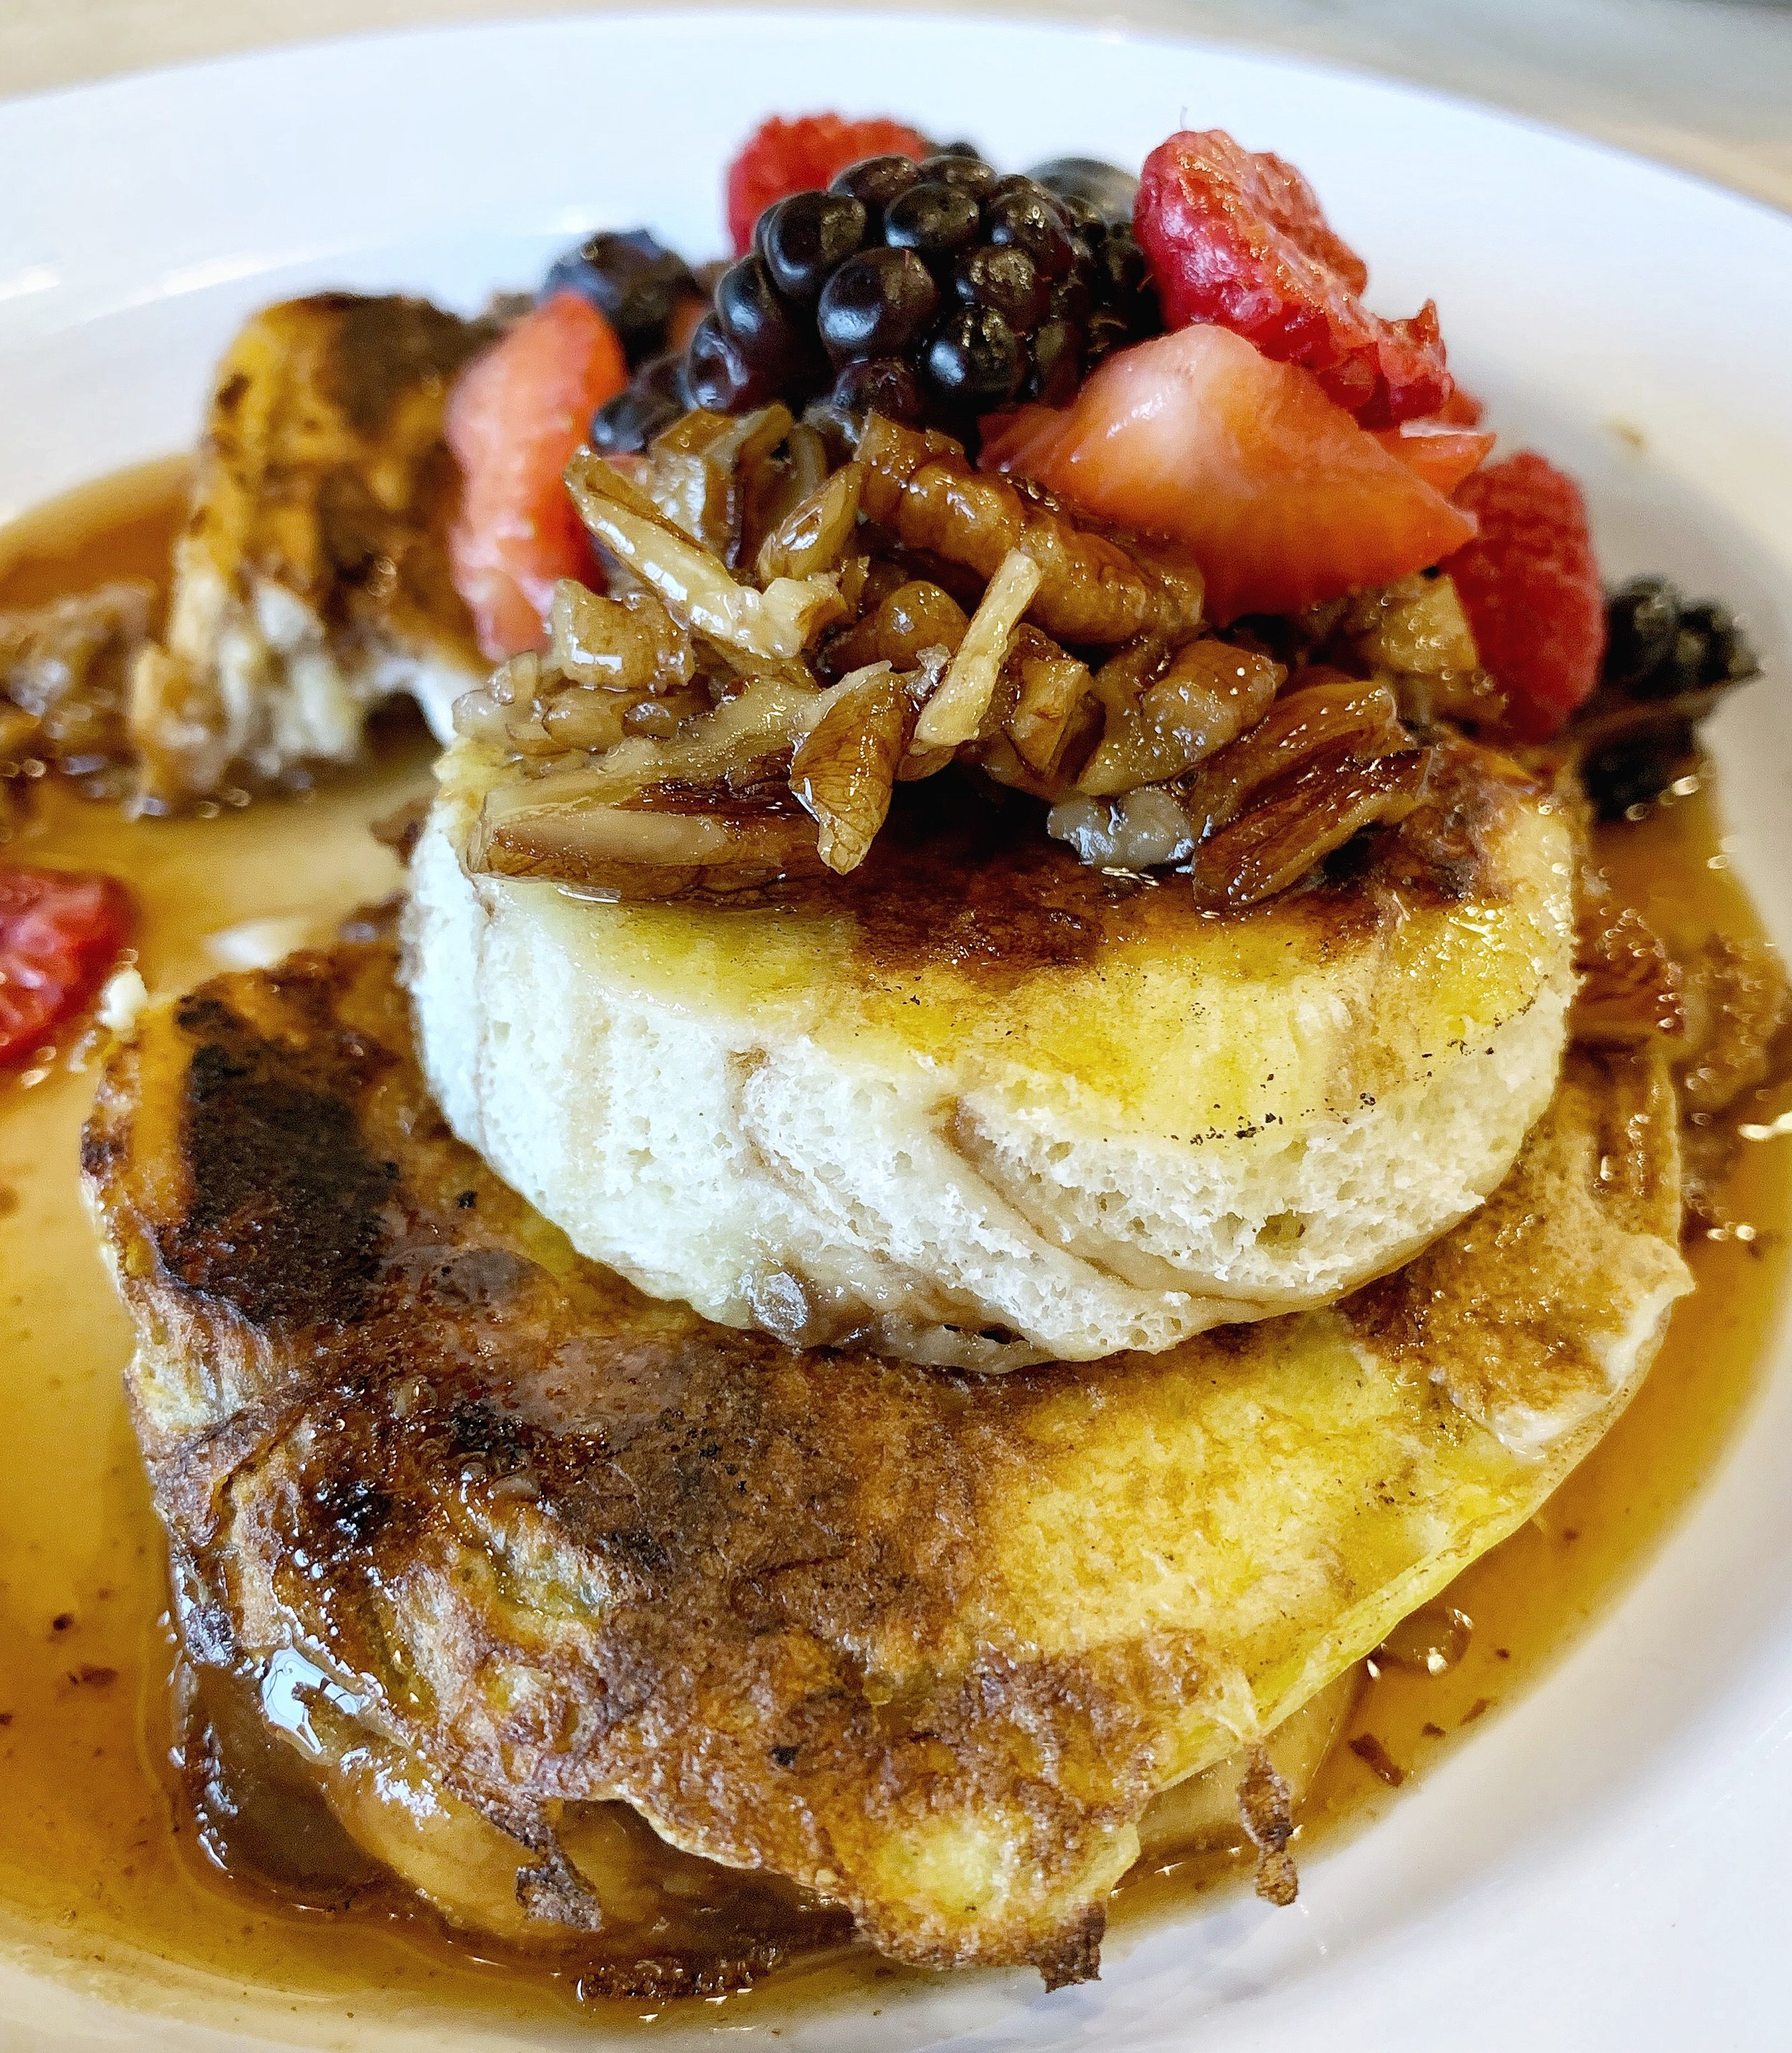 Stuffed French Toast - Cinnamon Babka French Toast stuffed with an over-easy egg, topped with berries and pecan maple syrupChef Alyssa is our Jewish soul sister, and she and Jason went to the same temple growing up! So, this babka French toast is a nod to one of the best Jewish culinary creations there is. If you've never had babka, you're missing out. And babka a la French toast is a great way to enjoy this classic.